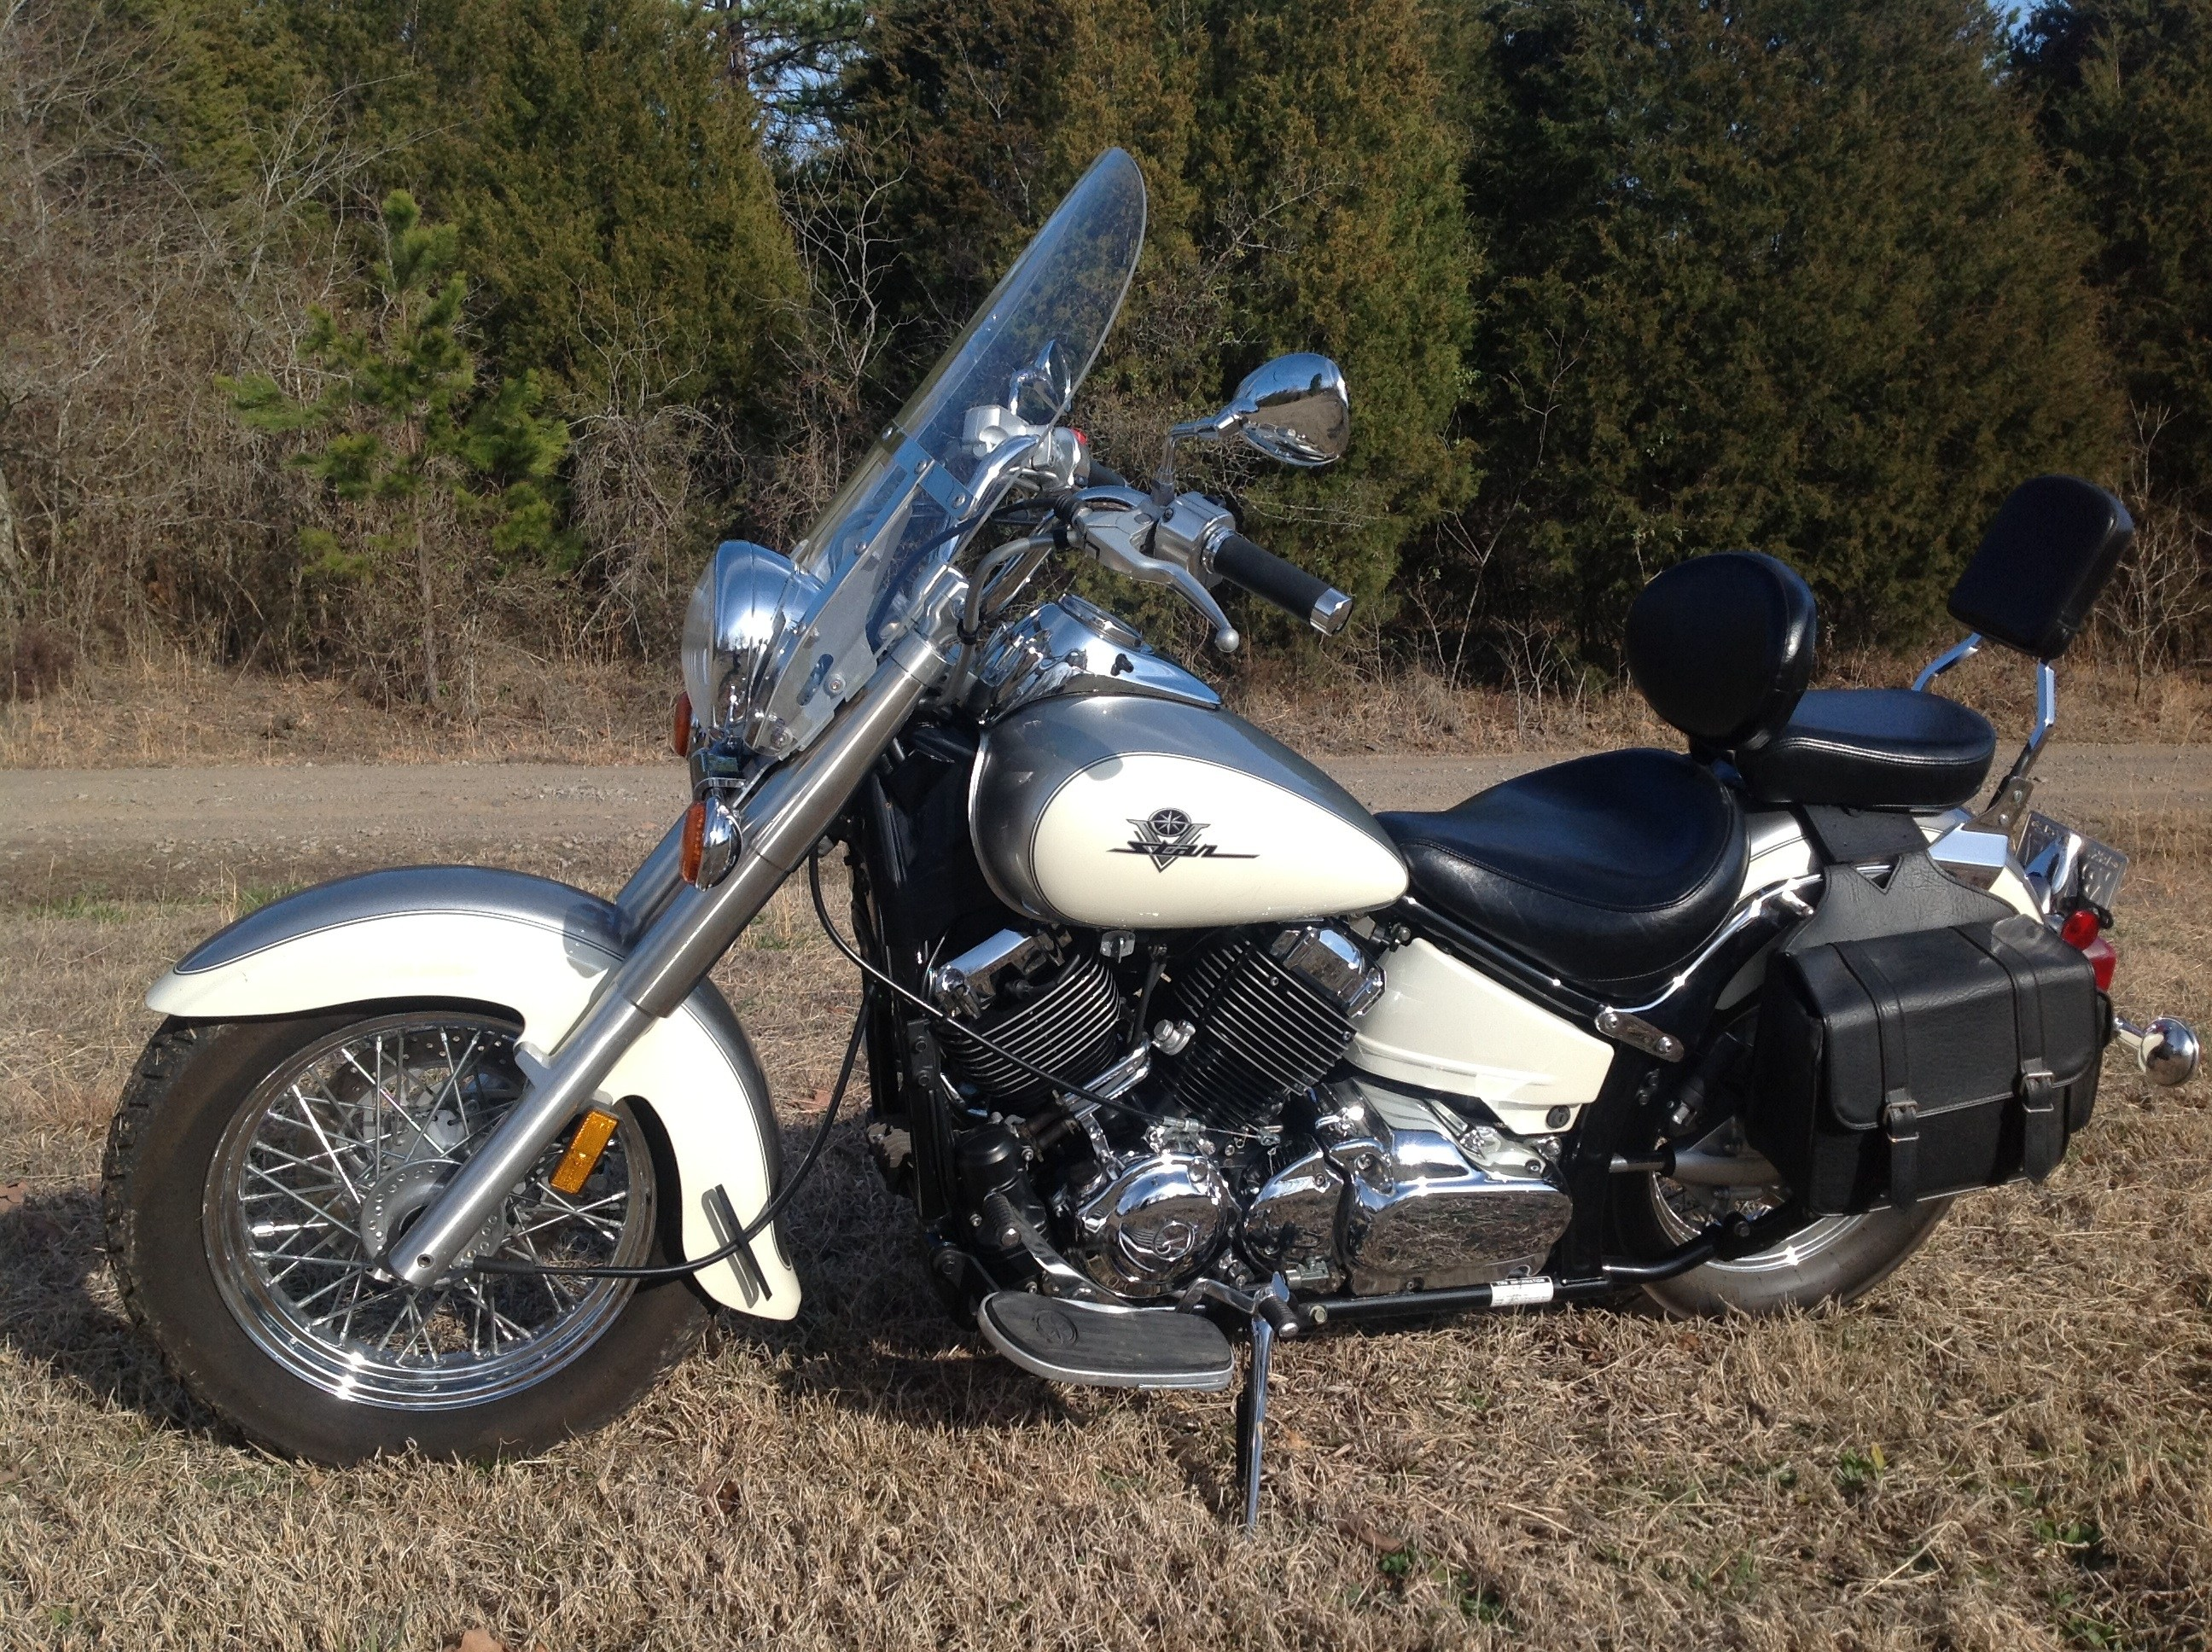 2003 yamaha xvs65a v star 650 classic pearl white and silver greenwood arkansas 347932. Black Bedroom Furniture Sets. Home Design Ideas